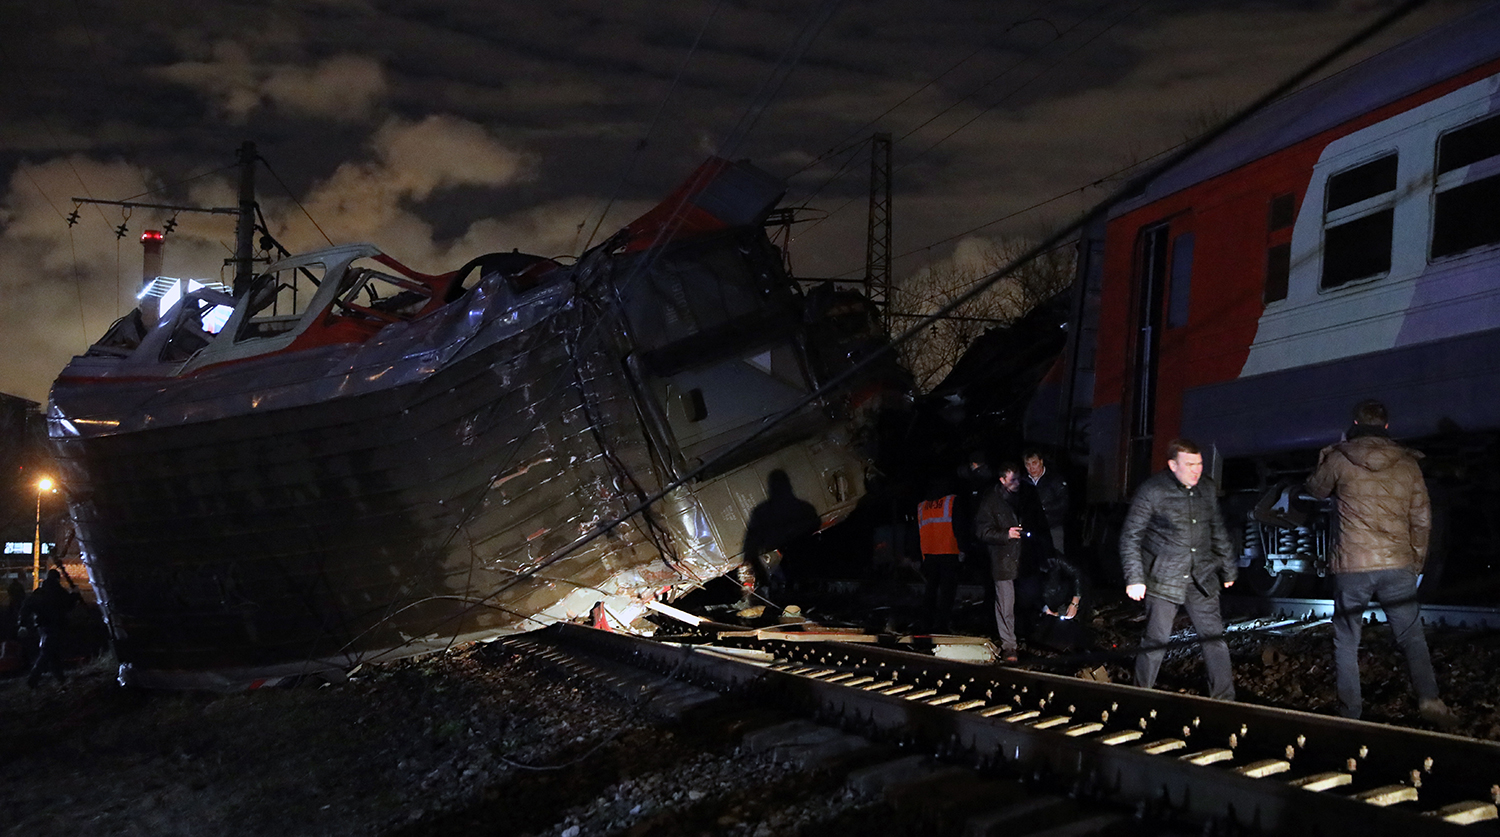 Two trains collided in Russia tonight